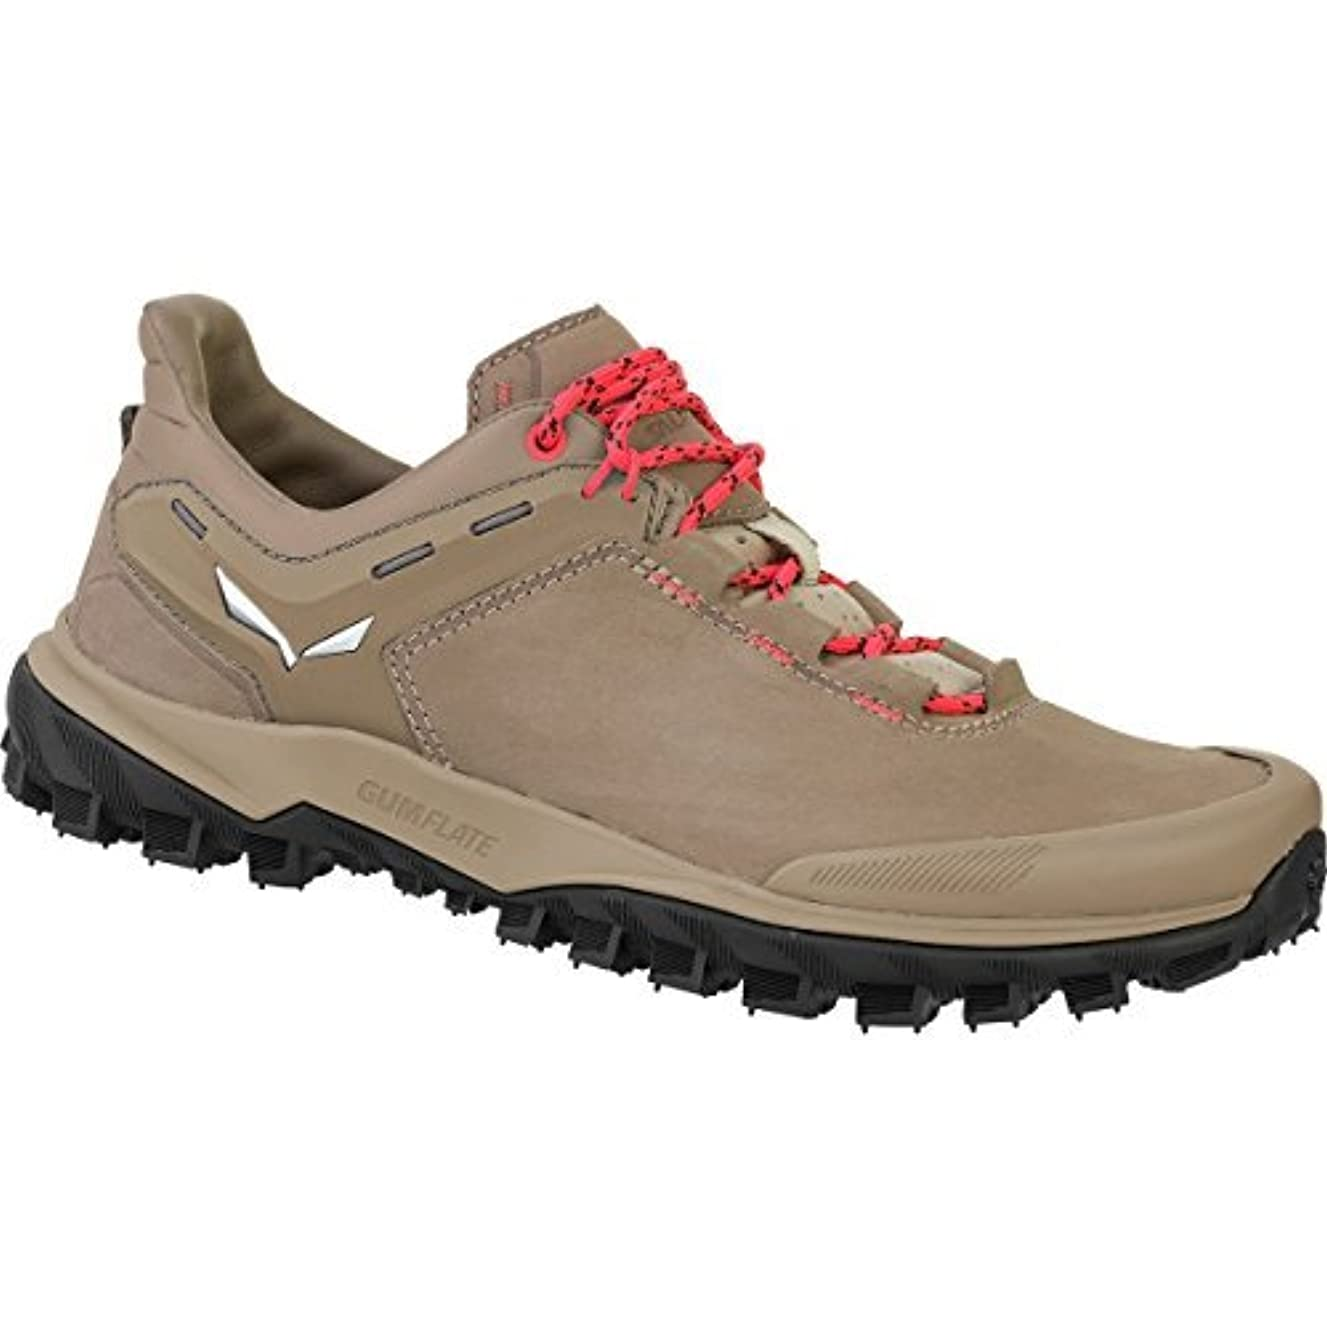 なぞらえる偏見ポルノSalewa Women's Wander Hiker Leather Hiking Shoe Other Nut/Hot Coral 8 [並行輸入品]